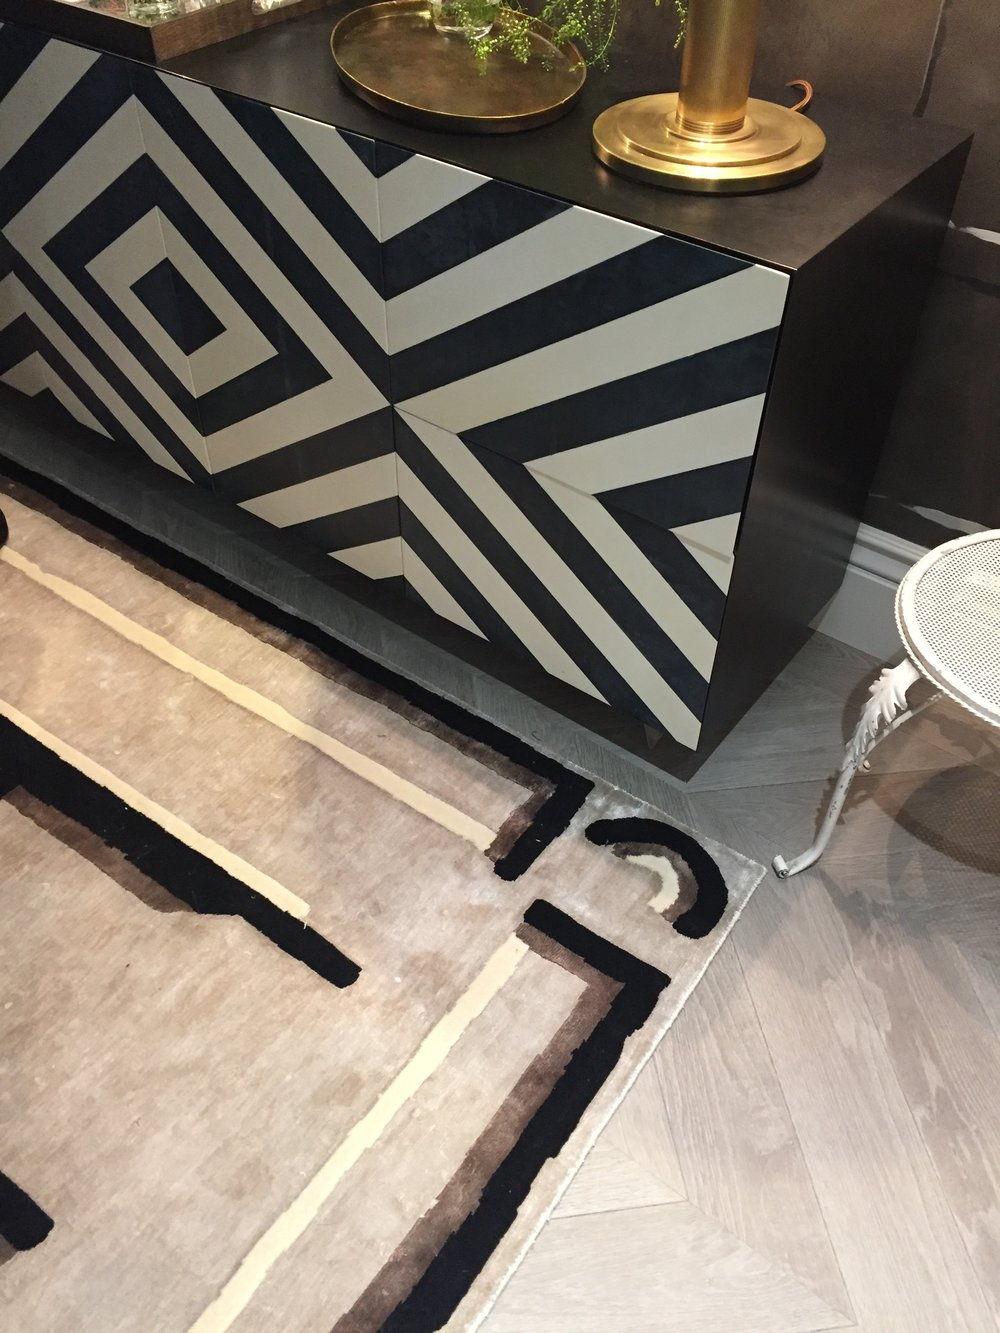 Holiday House London, An Interior Design Event With A Cause - Nocturne in Grey & Silver flooring detail by Studio QD and Nicky Haslam.JPG